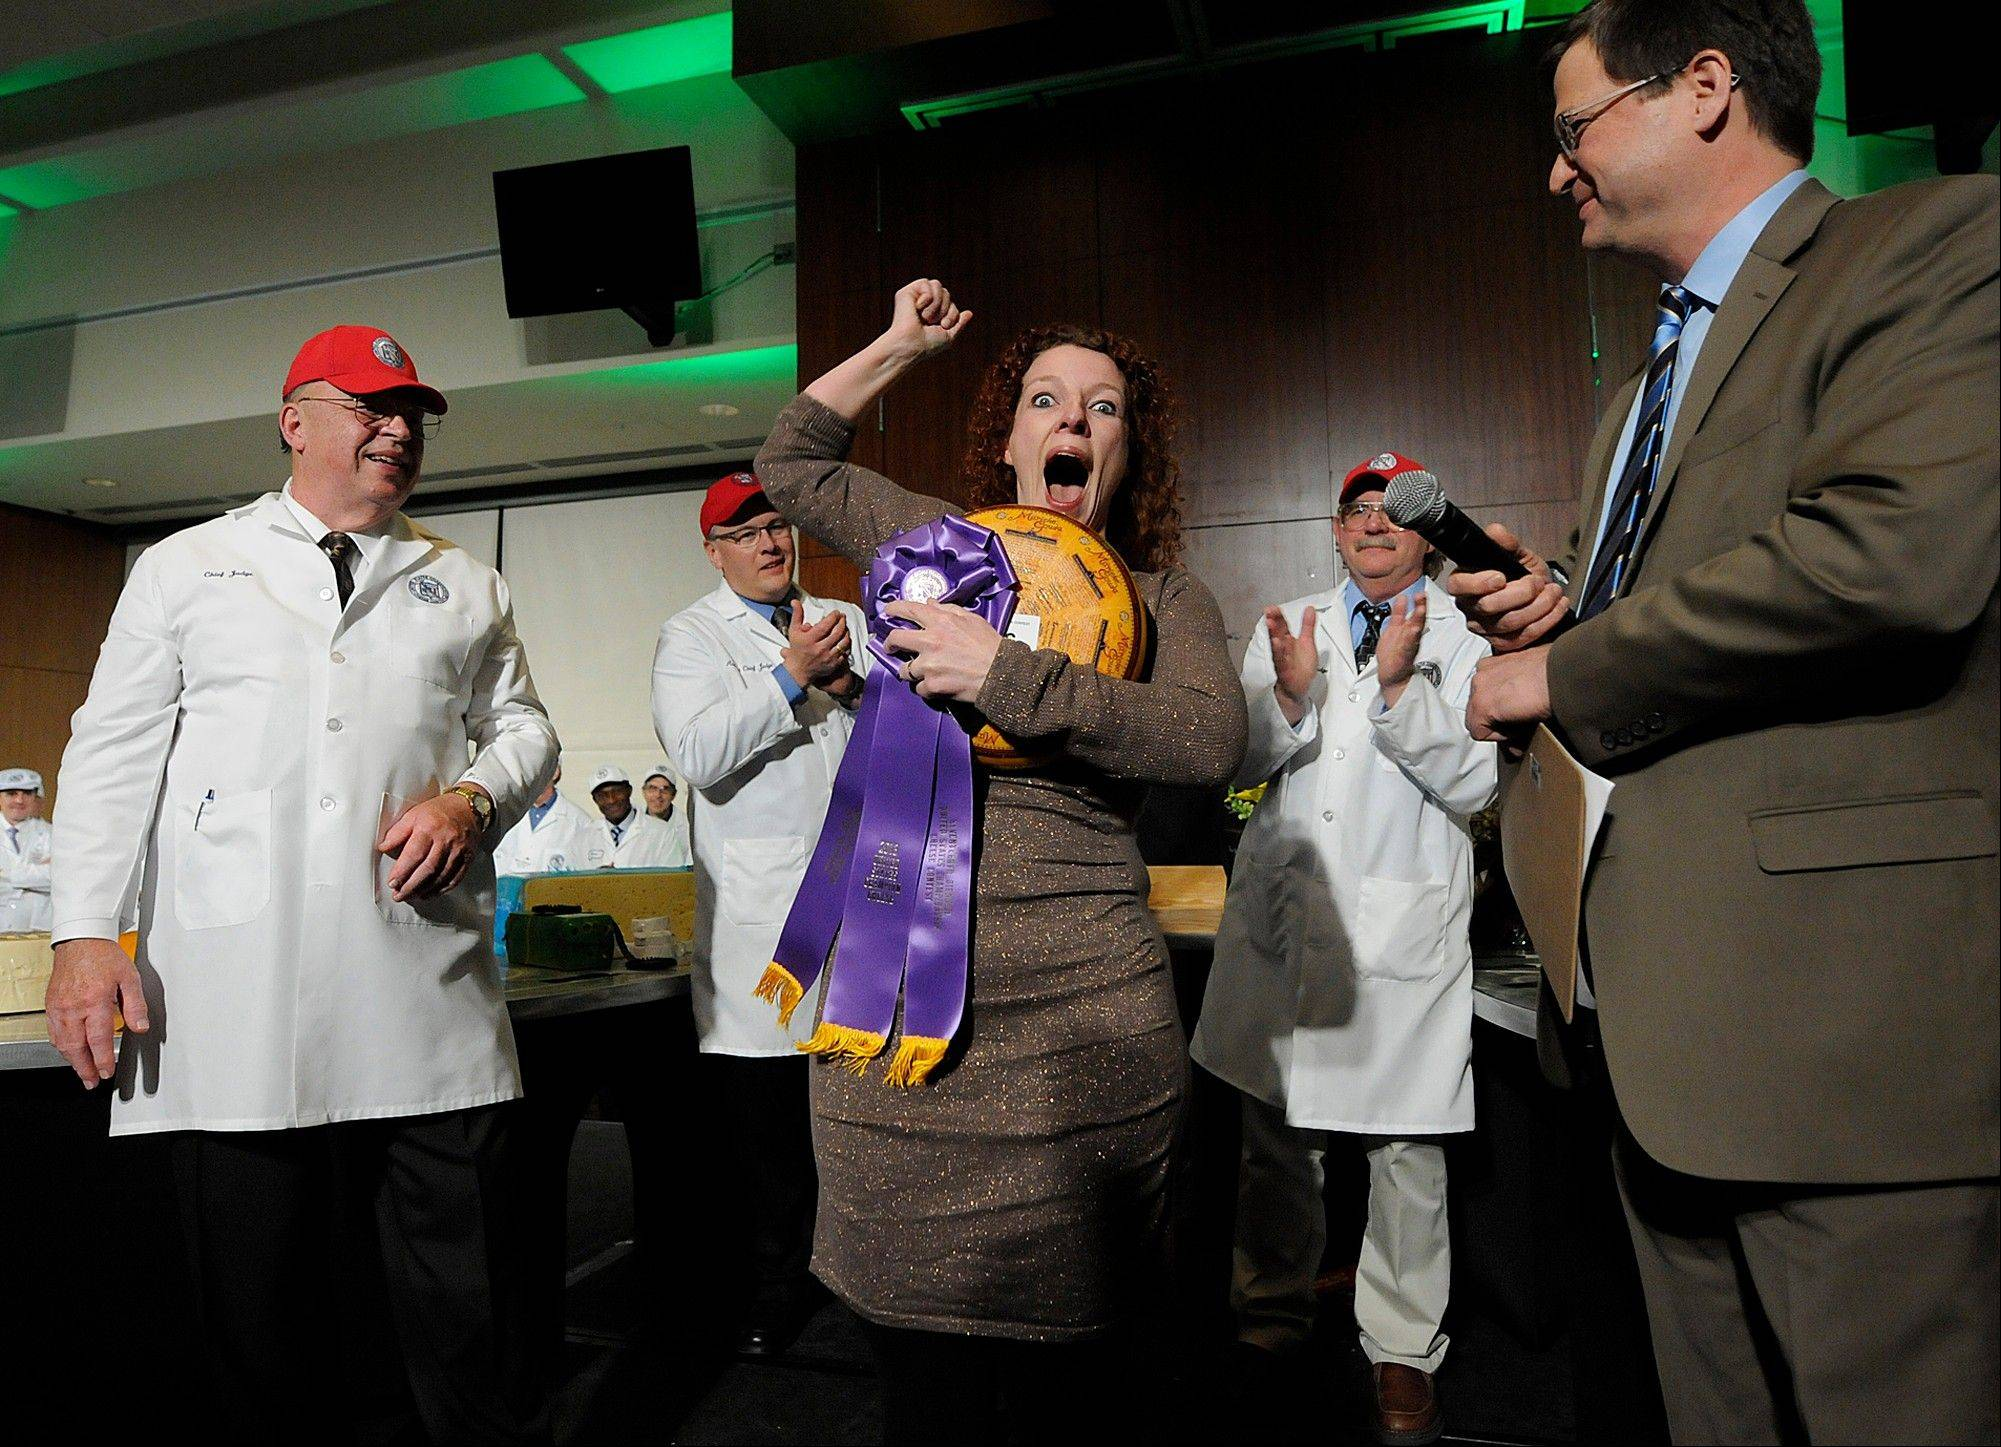 Marieke Penterman, owner of Holland's Family Cheese in Thorp, Wis., celebrates winning first place in the U.S. Cheese Championship Contest on Wednesday at Lambeau Field in Green Bay, Wis.